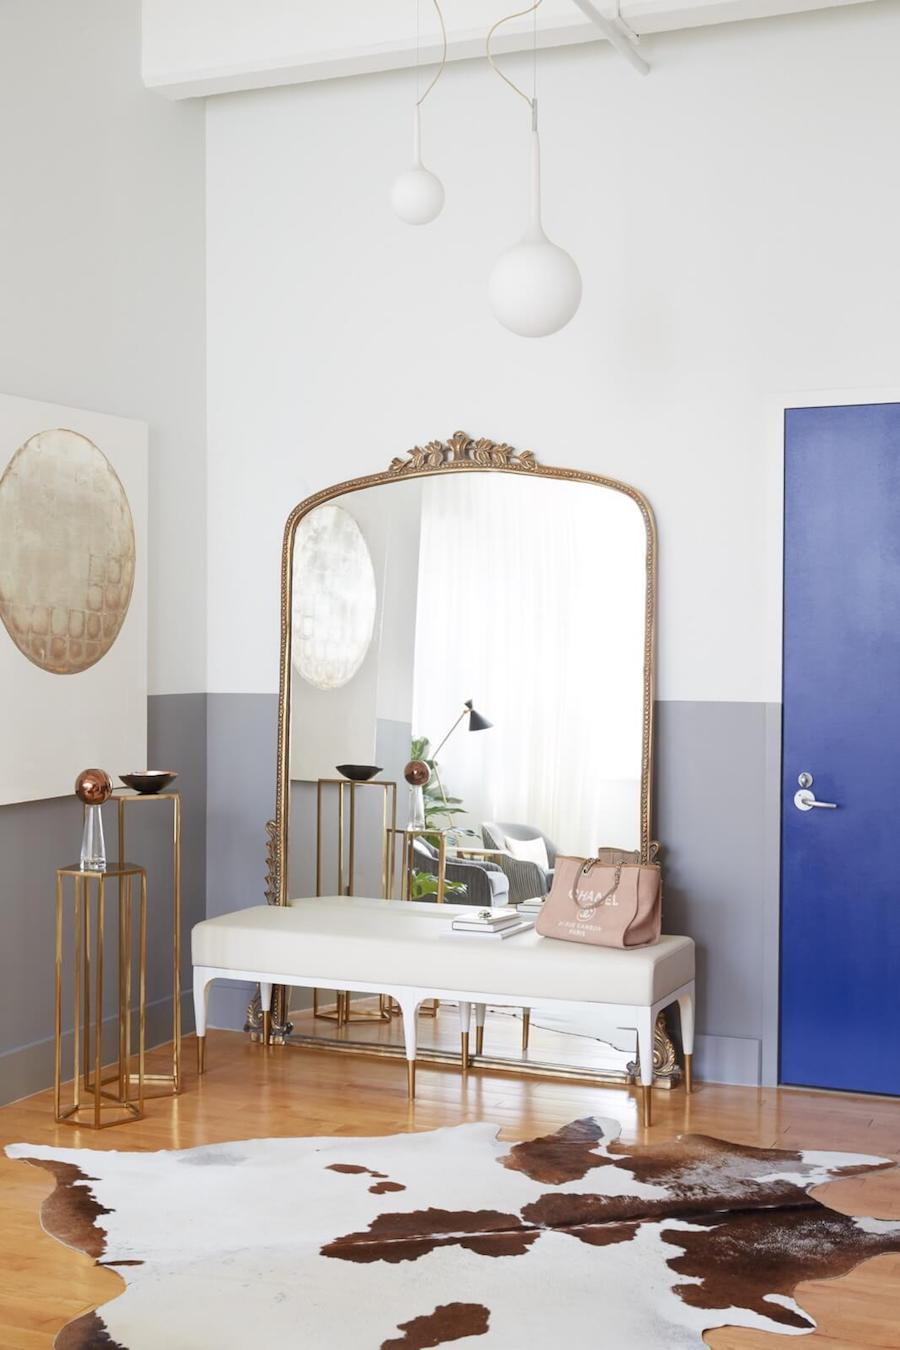 Anthropologie Gleaming Primrose Mirror on floor in Brooklyn loft with white bench and cowhide rug